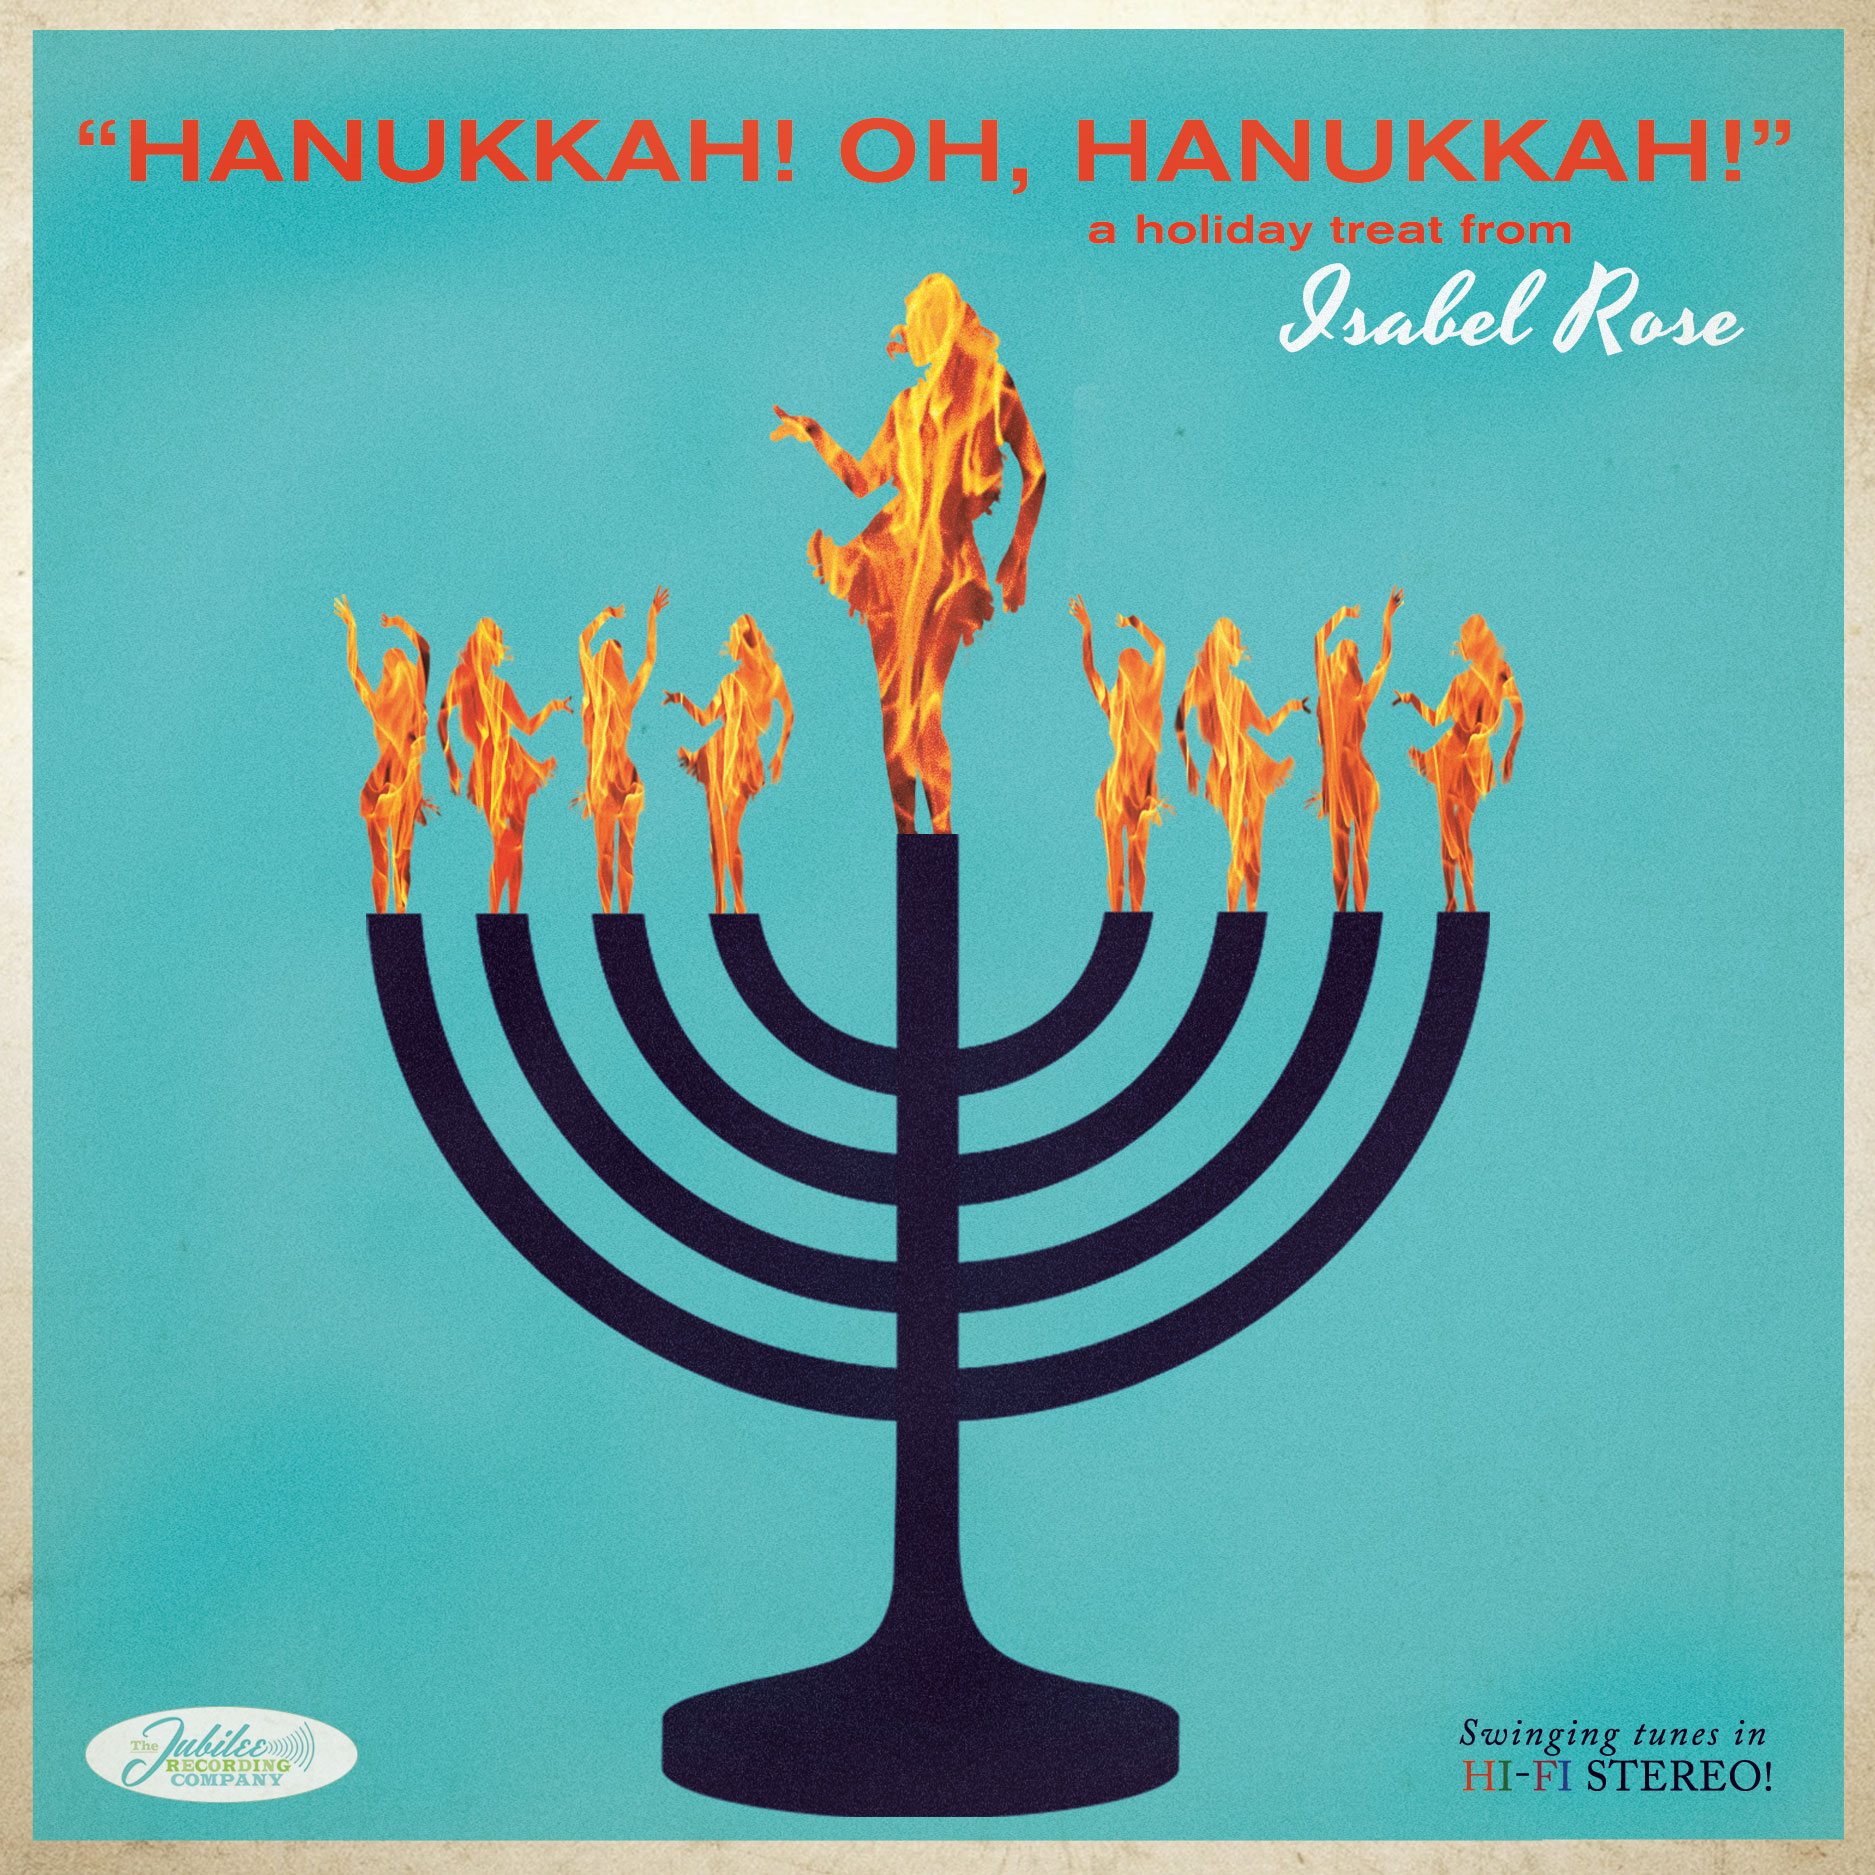 hanukkah-album-cover-isabel-rose chrisitna d'angelo designer.jpg